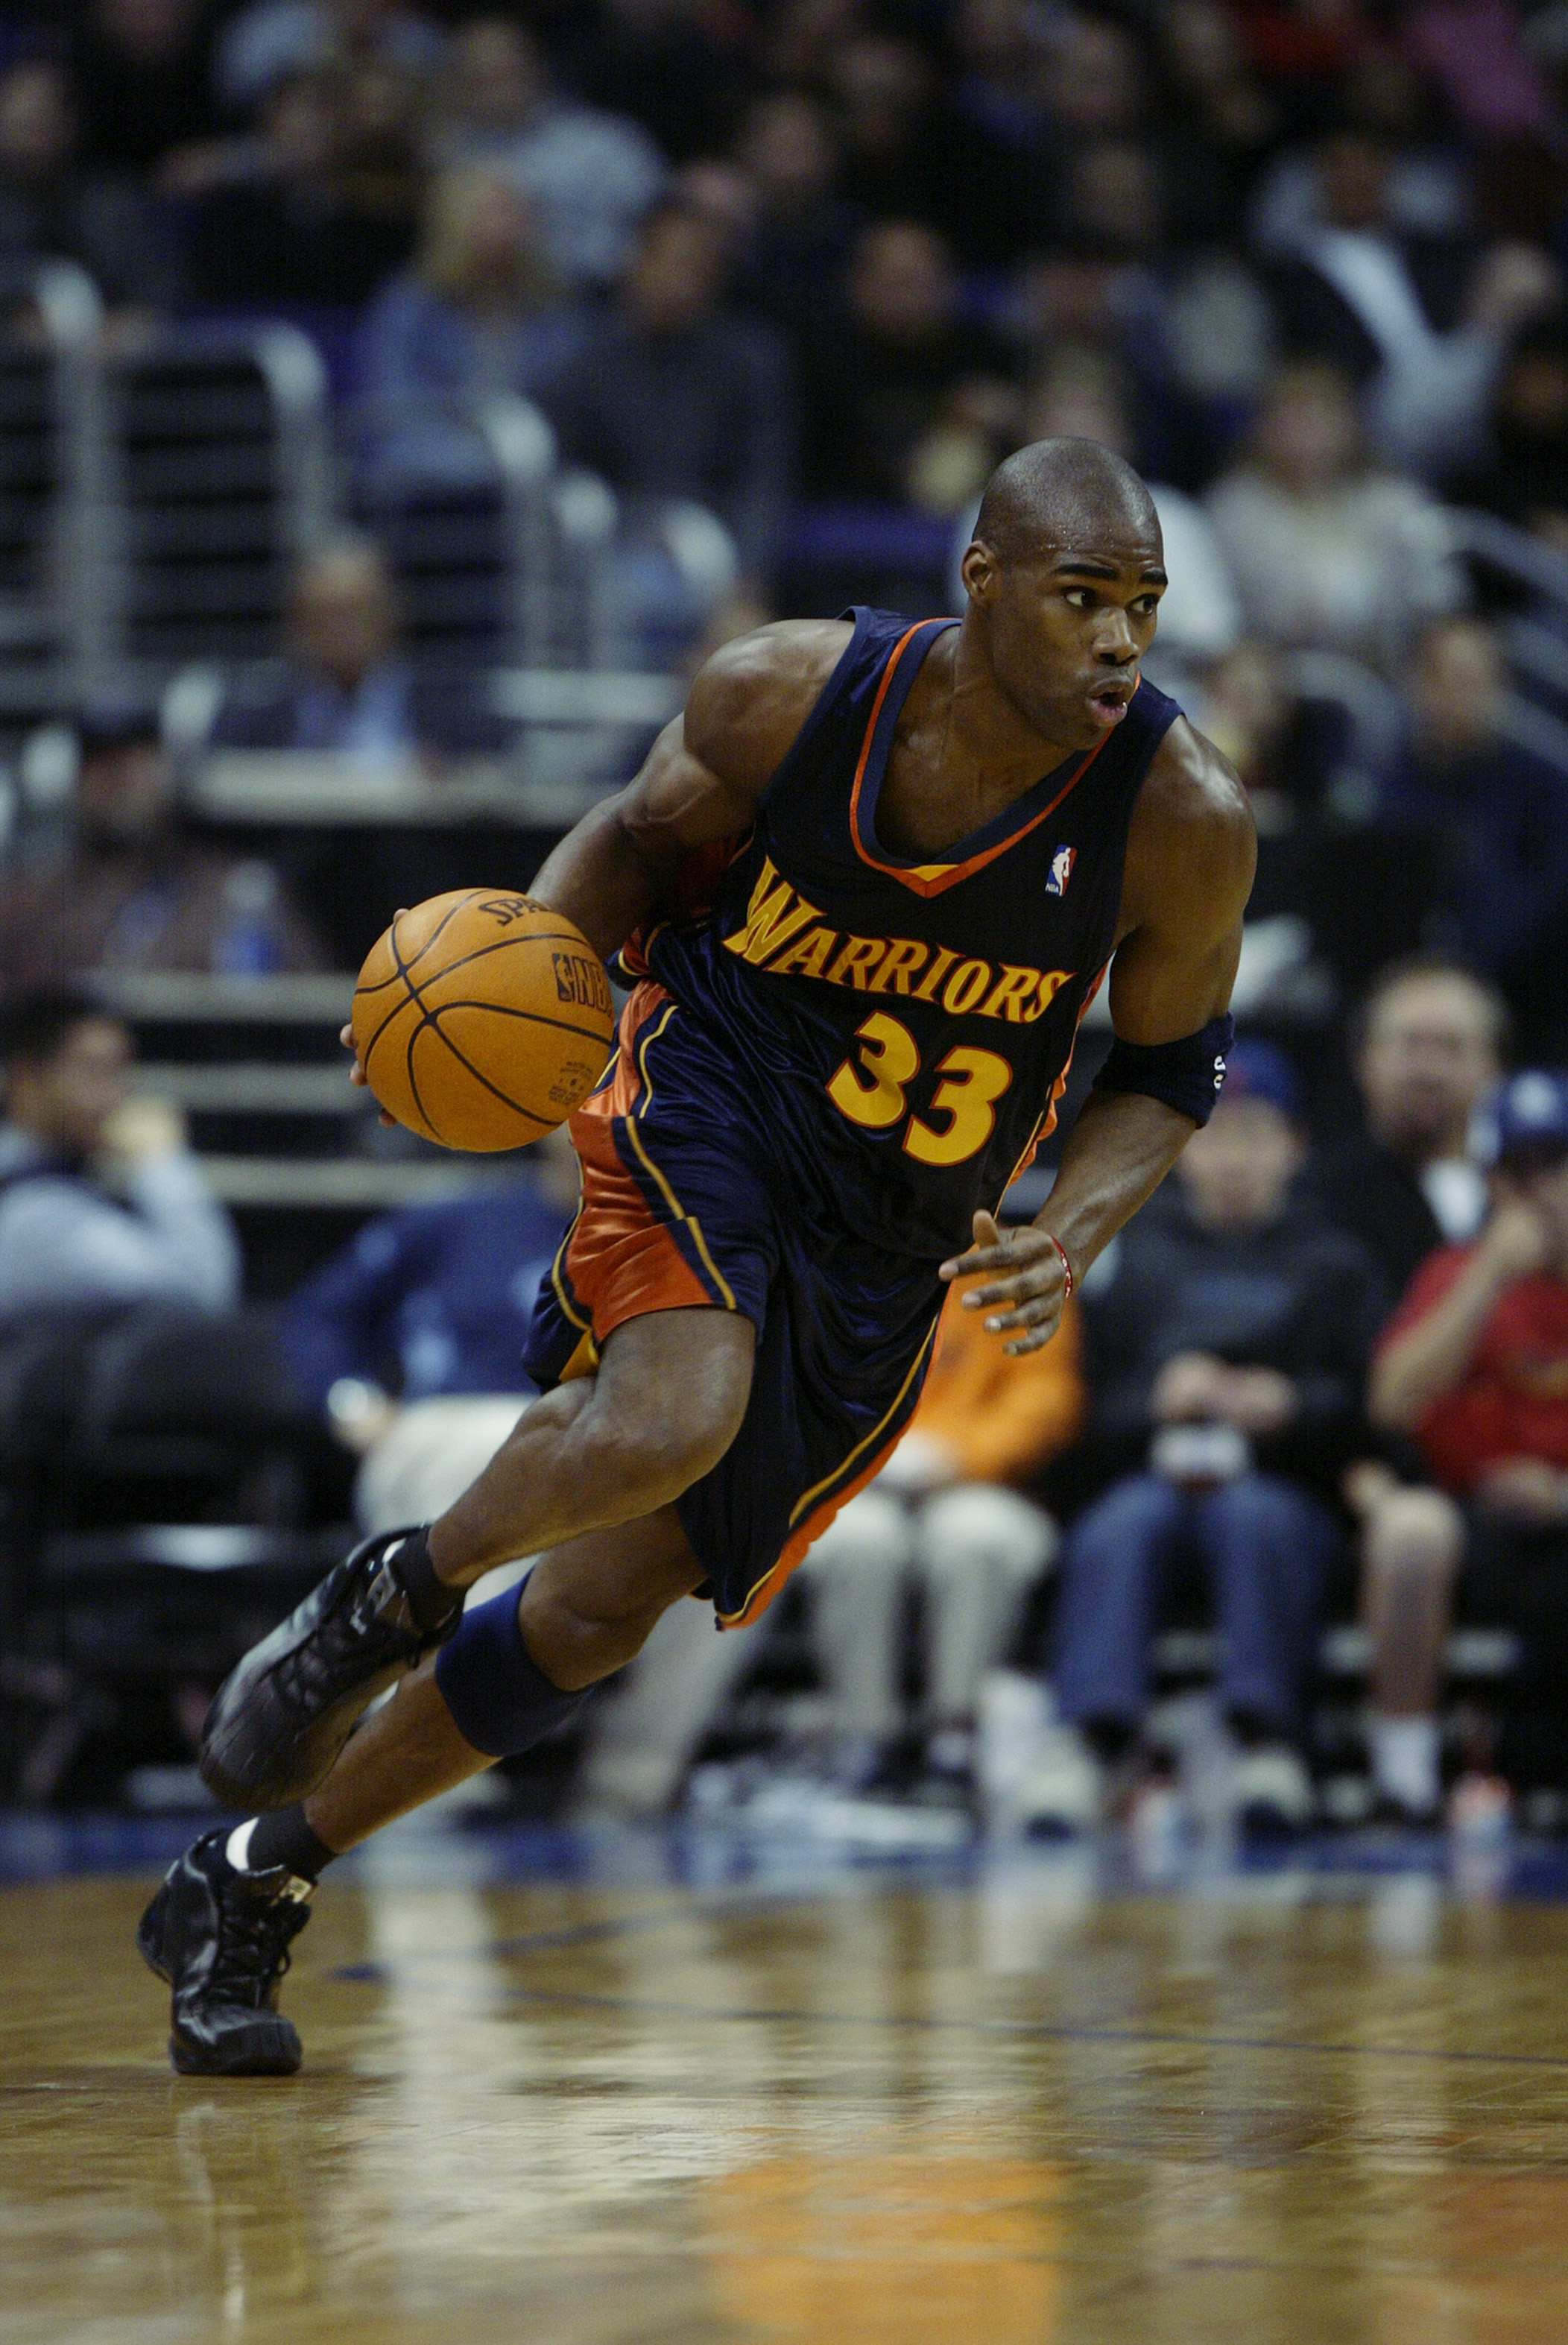 LOS ANGELES - FEBRUARY 26:  Antawn Jamison #33 of the Golden State Warriors handles the ball during the NBA game against the Los Angeles Clippers at Staples Center on February 26, 2003 in Los Angeles, California.  The Warriors won 108-94.  NOTE TO USER: U